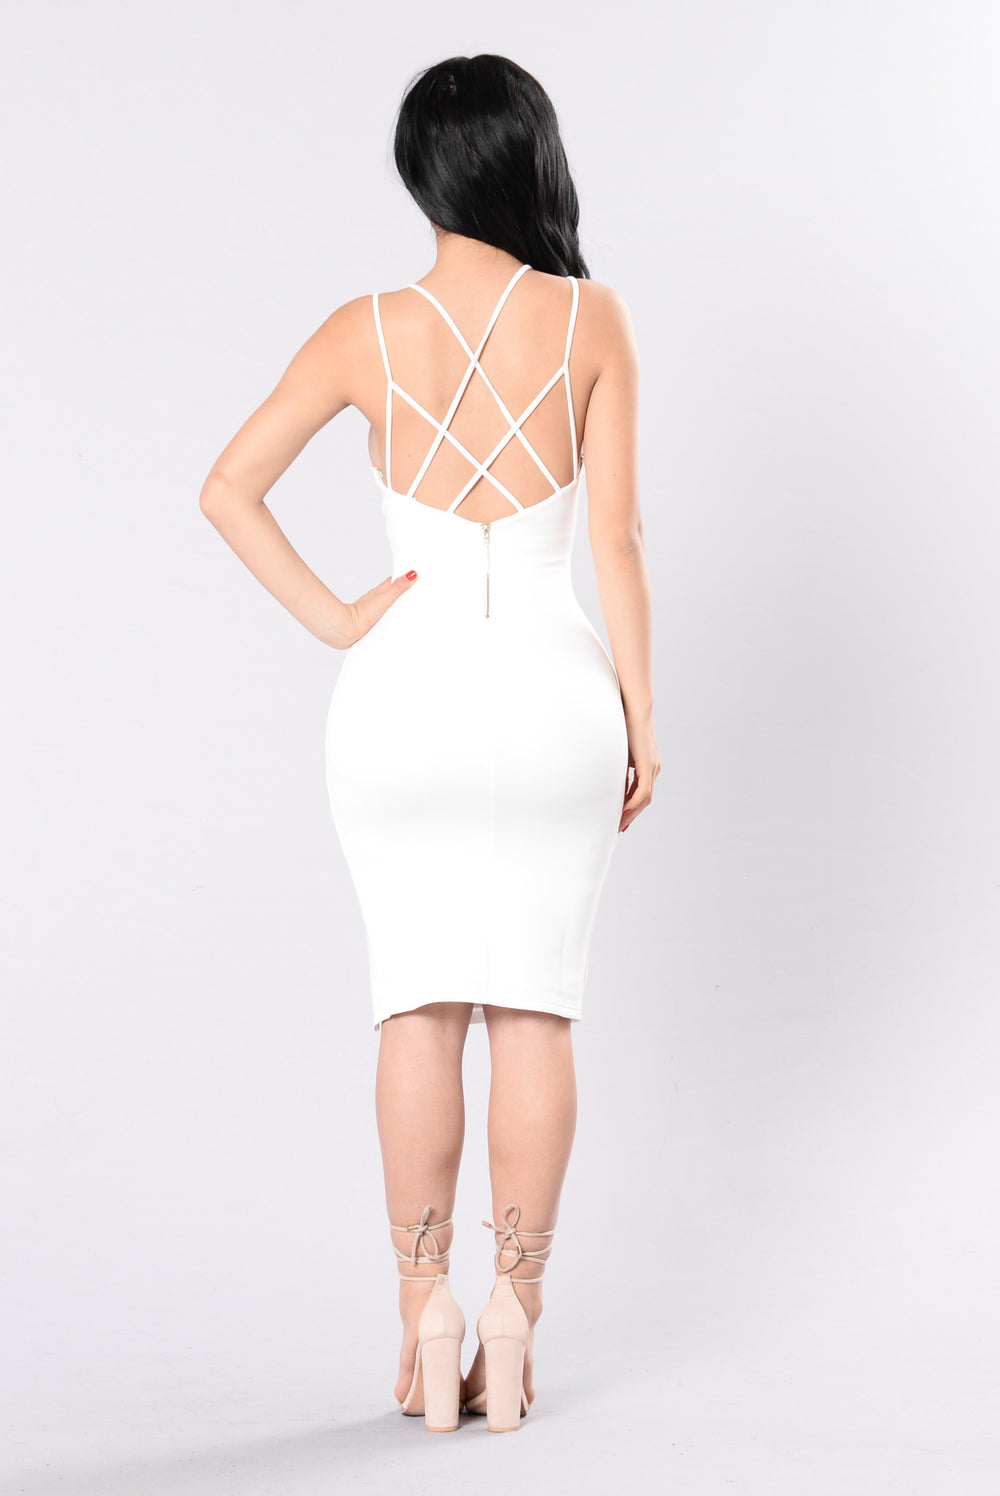 Aching Soul Dress - White